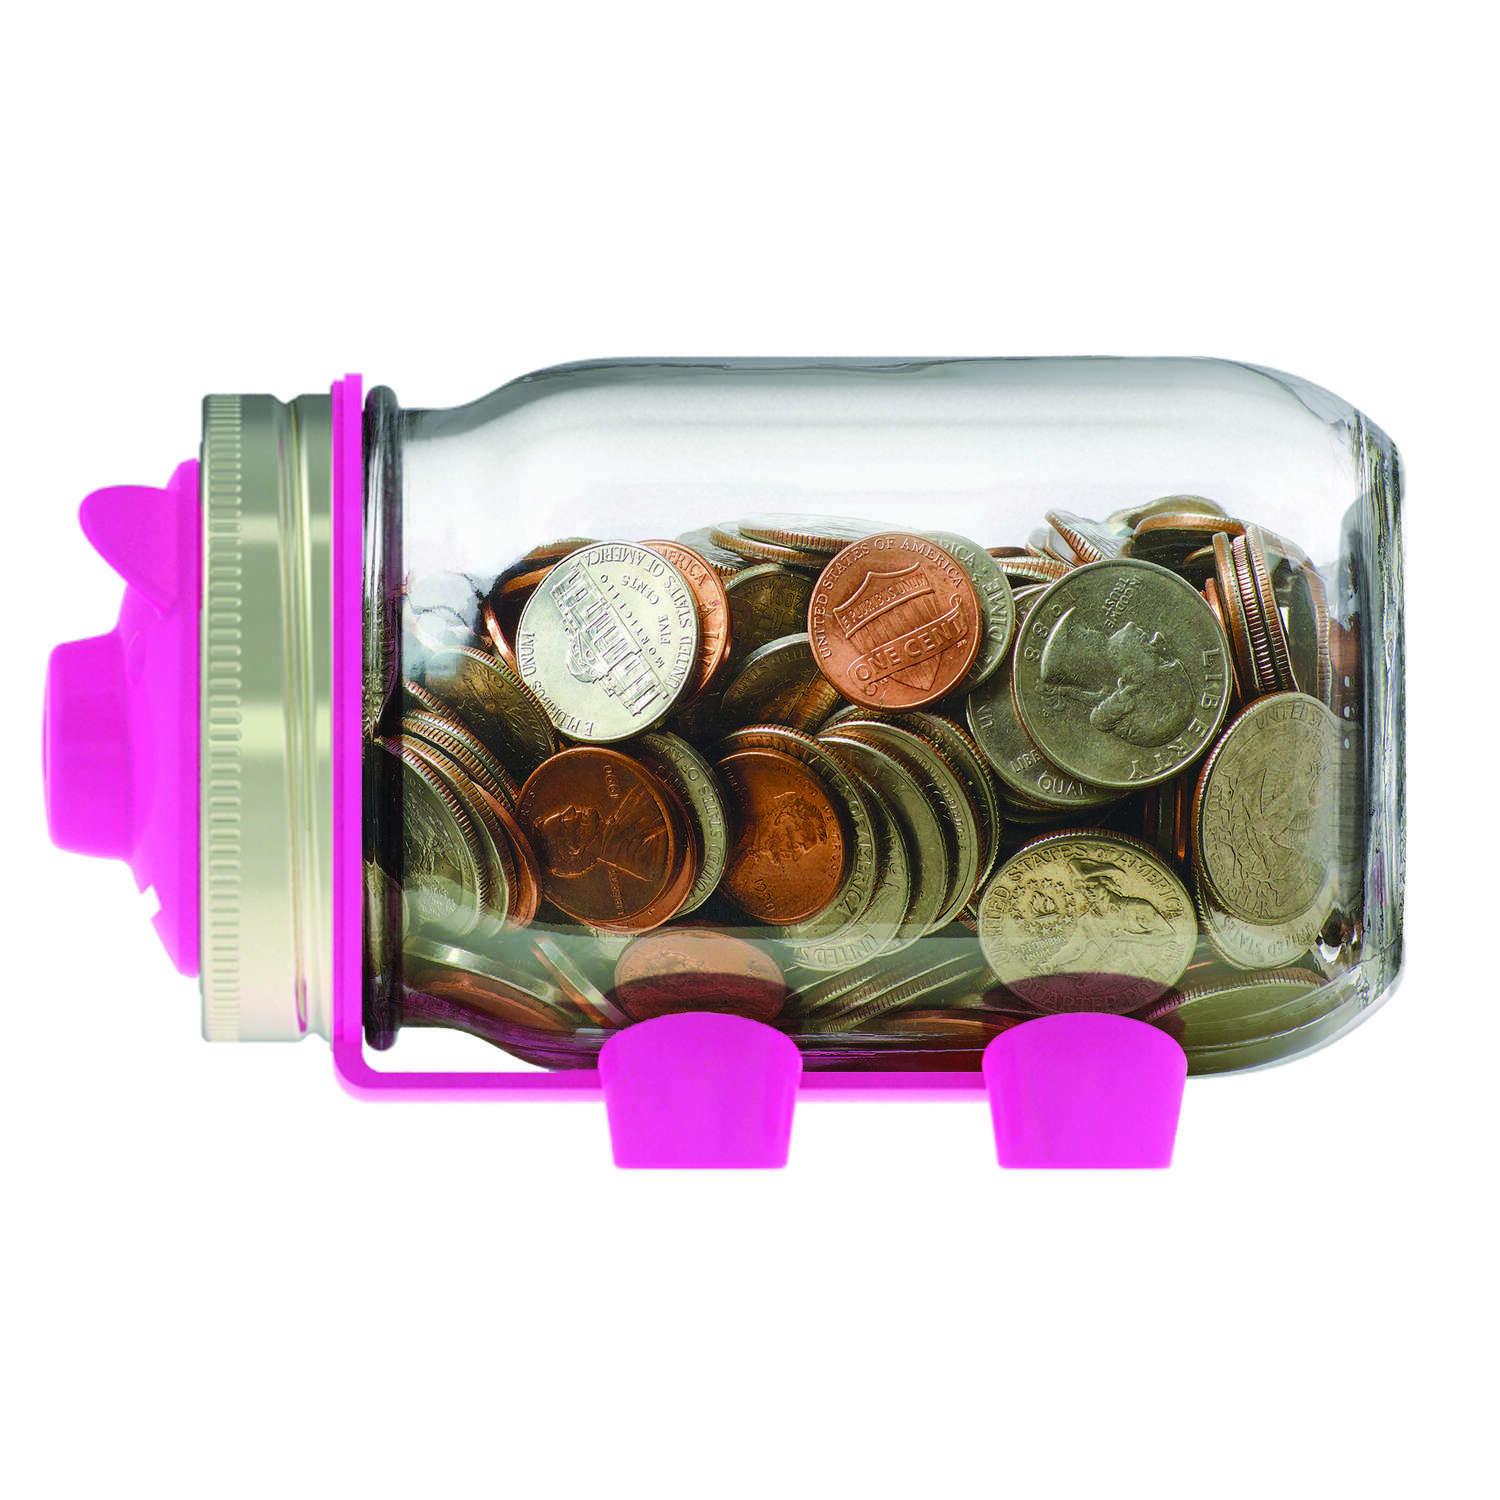 Jarware Regular Mouth Decorative Jar Lid Piggy Bank 1 pk